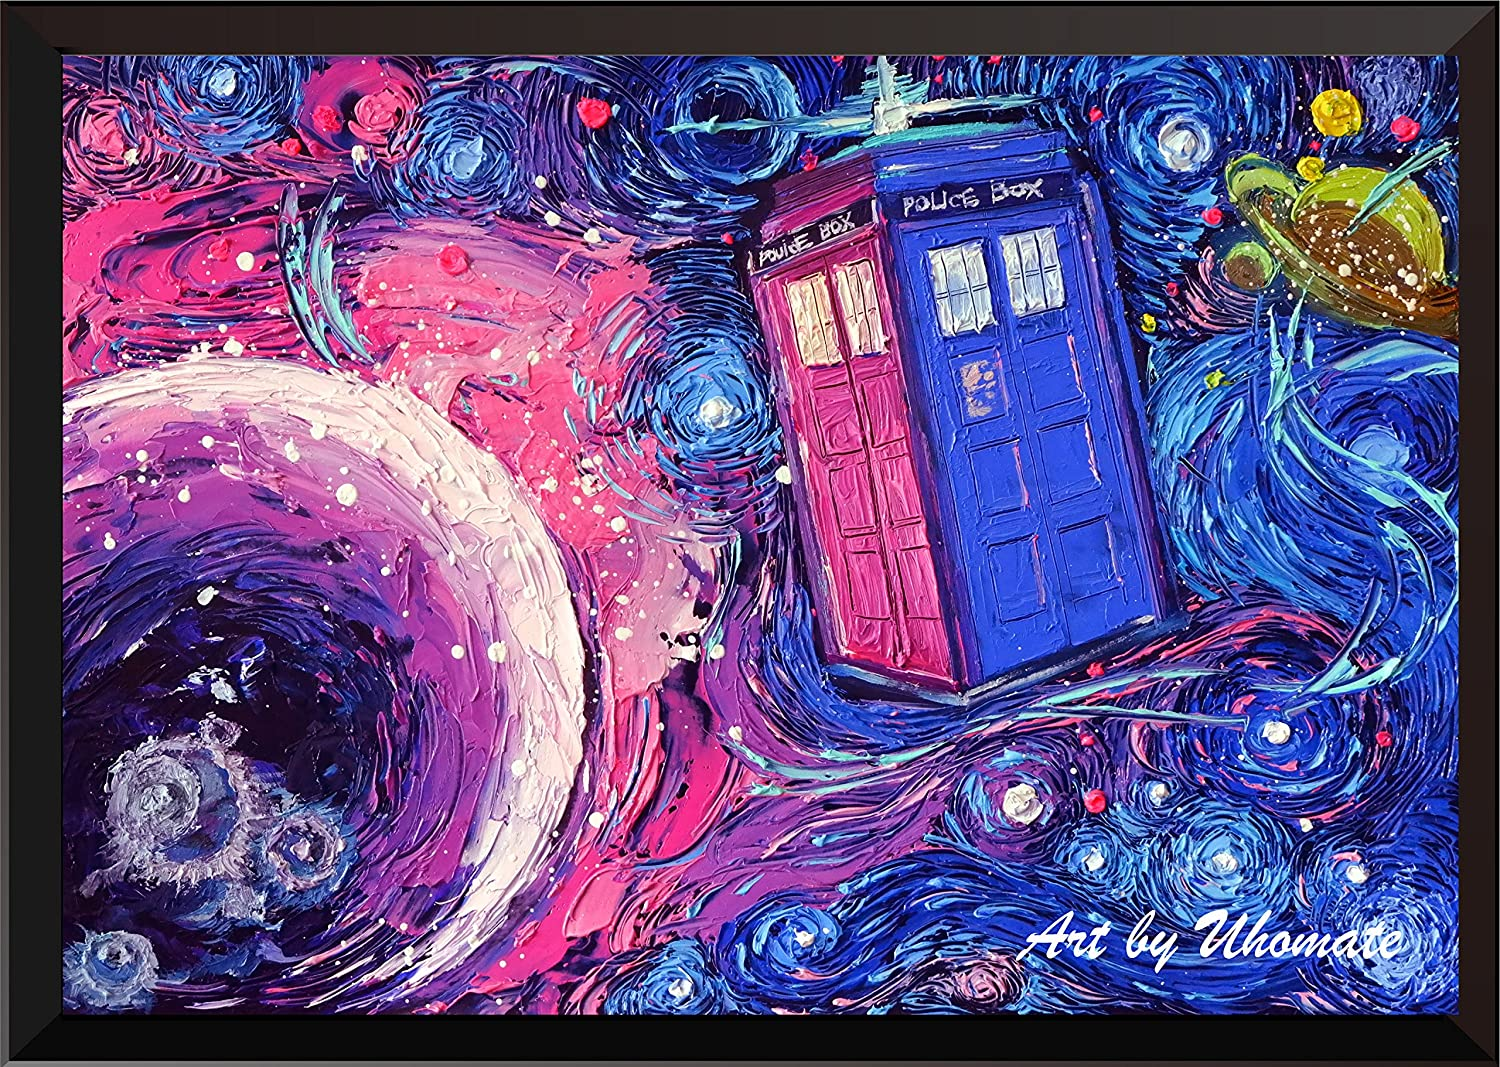 Amazon.com: Uhomate Tardis Dr Who Doctor Telephone Booth Wall Decor ...